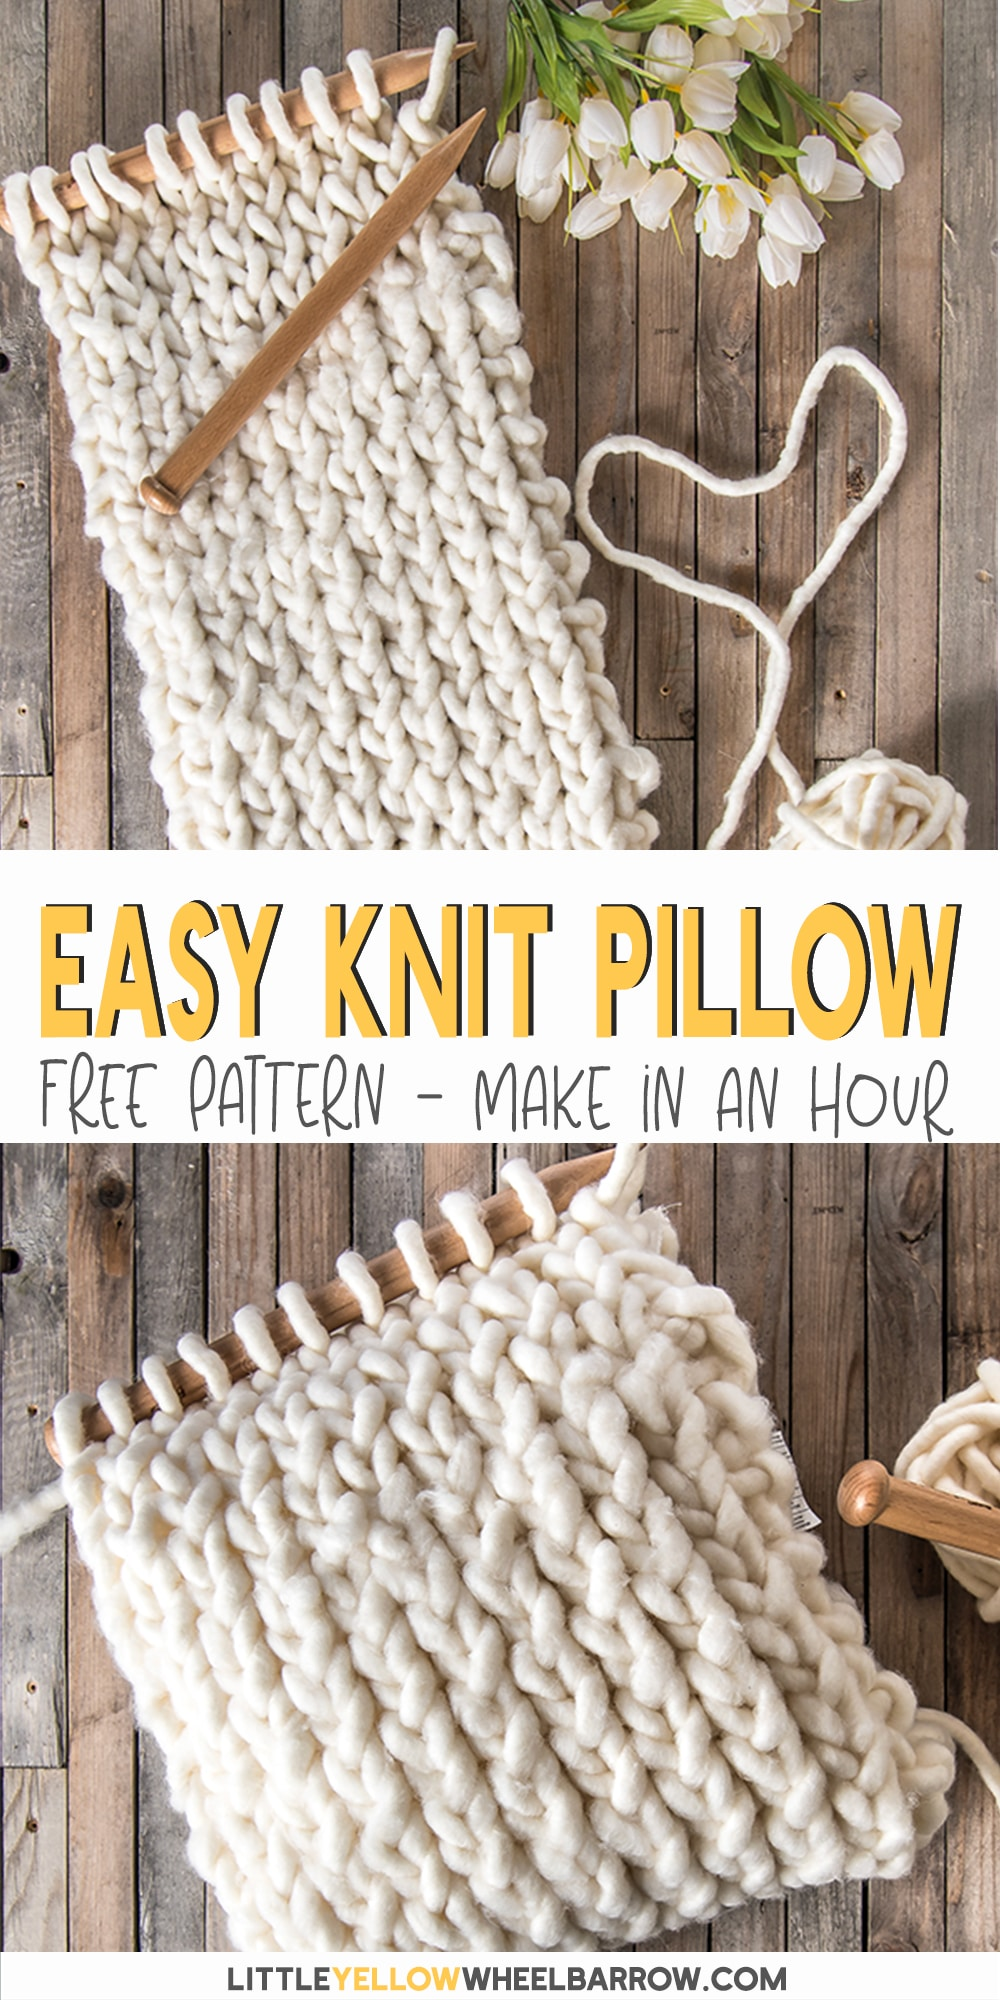 A chunky knit pillow cover that you can pull together in under an hour. This free pattern is perfect for a beginner knitter. No difficult stitches, or counting rows! If you can knit and purl you\'re already there. This easy knitting project is great to perk up old cushions or even to make as a DIY gift. Made with jumbo yarn these cushion covers knit up super quick. If you\'re a new knitter and want a fun yarn project, this knitting pattern is for you!